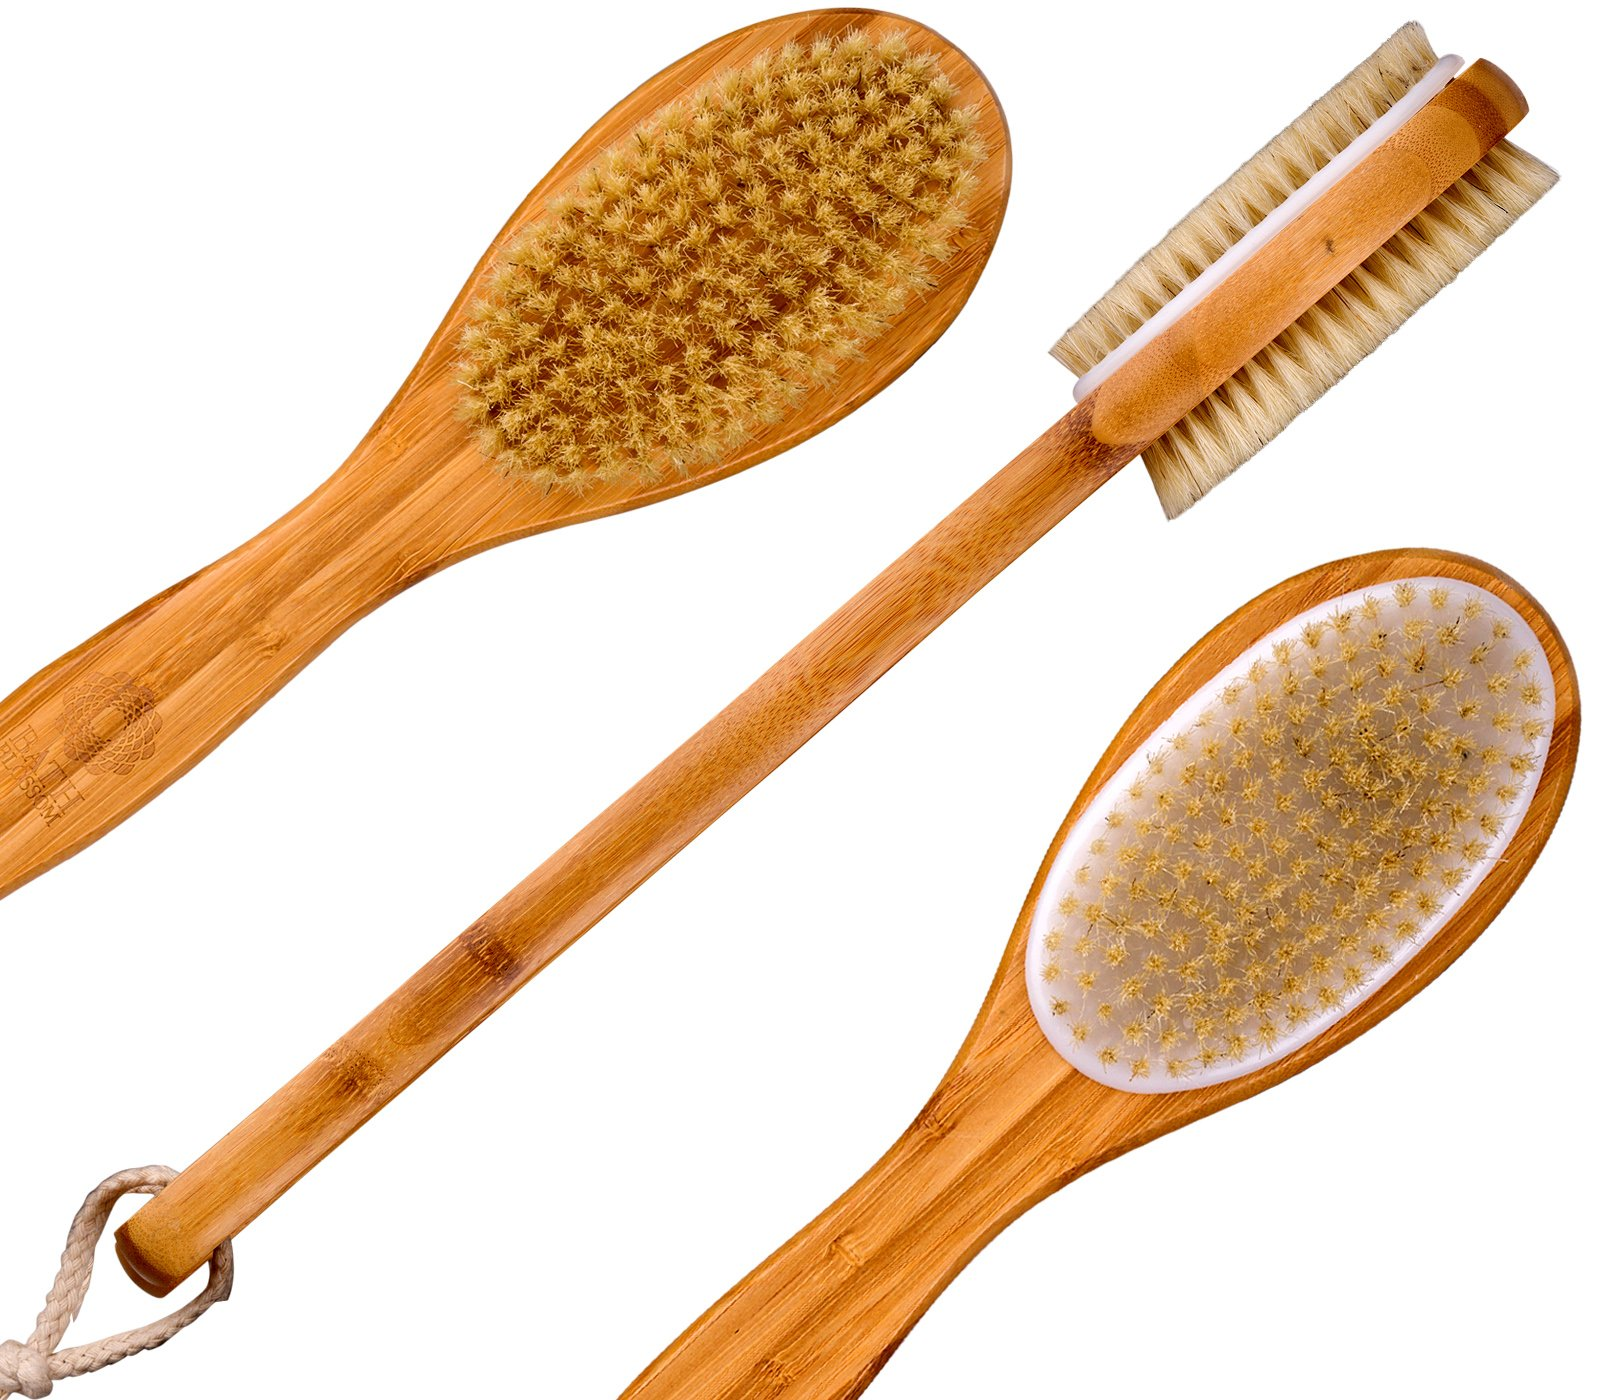 Bath Blossom Bamboo Bath Body Brush Extra Long Handle Exfoliating Back Scrubber - Effective Back Brush Exfoliation and Skin Cellulite Brushes - Used for Wet or Dry Brushing For Men and Women